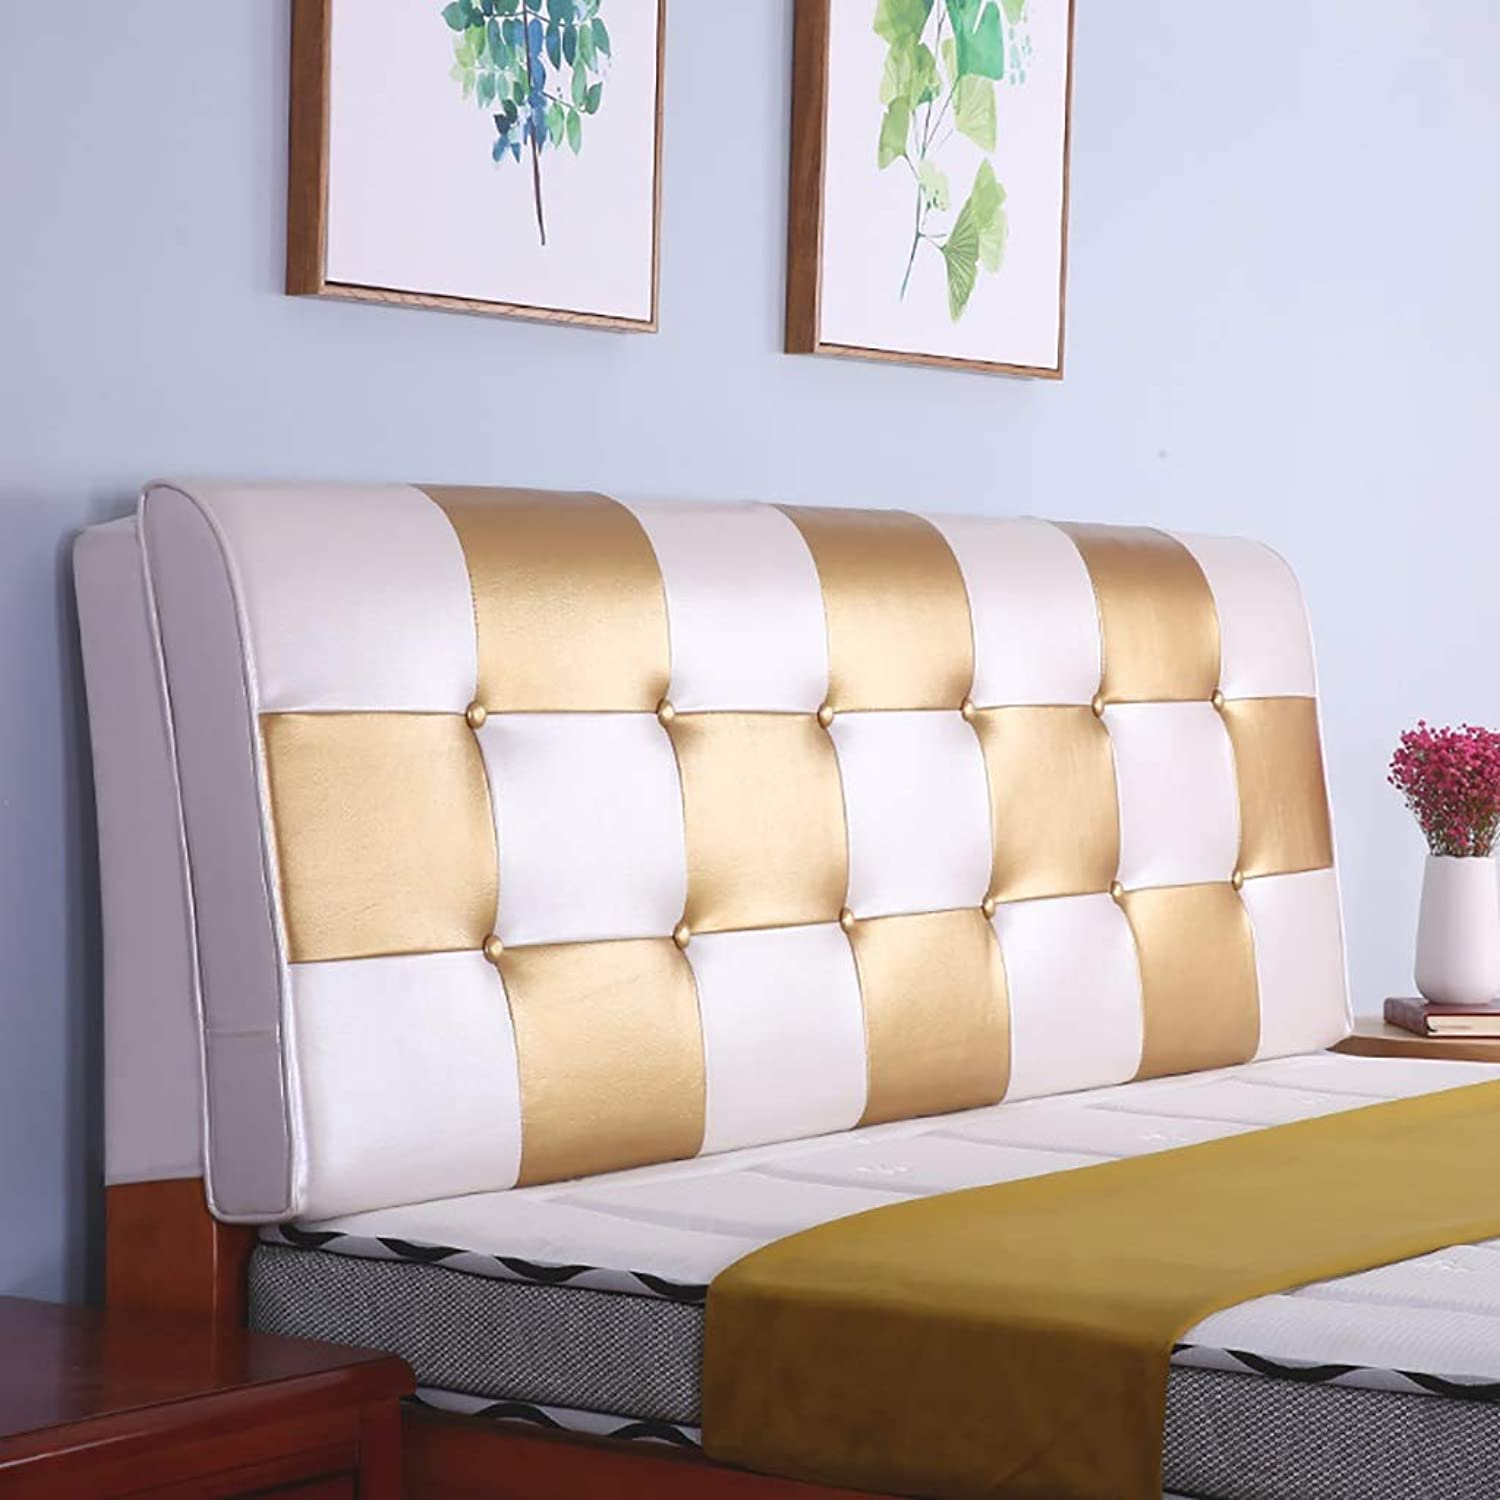 Reading Pillow Back Support Pillow Bedside Cushion Double Tatami Soft Bag Large Back Cushion Cover Set Bed backrest Pillow Removable and Washable Predect The Waist (90  58CM, 120  58CM)